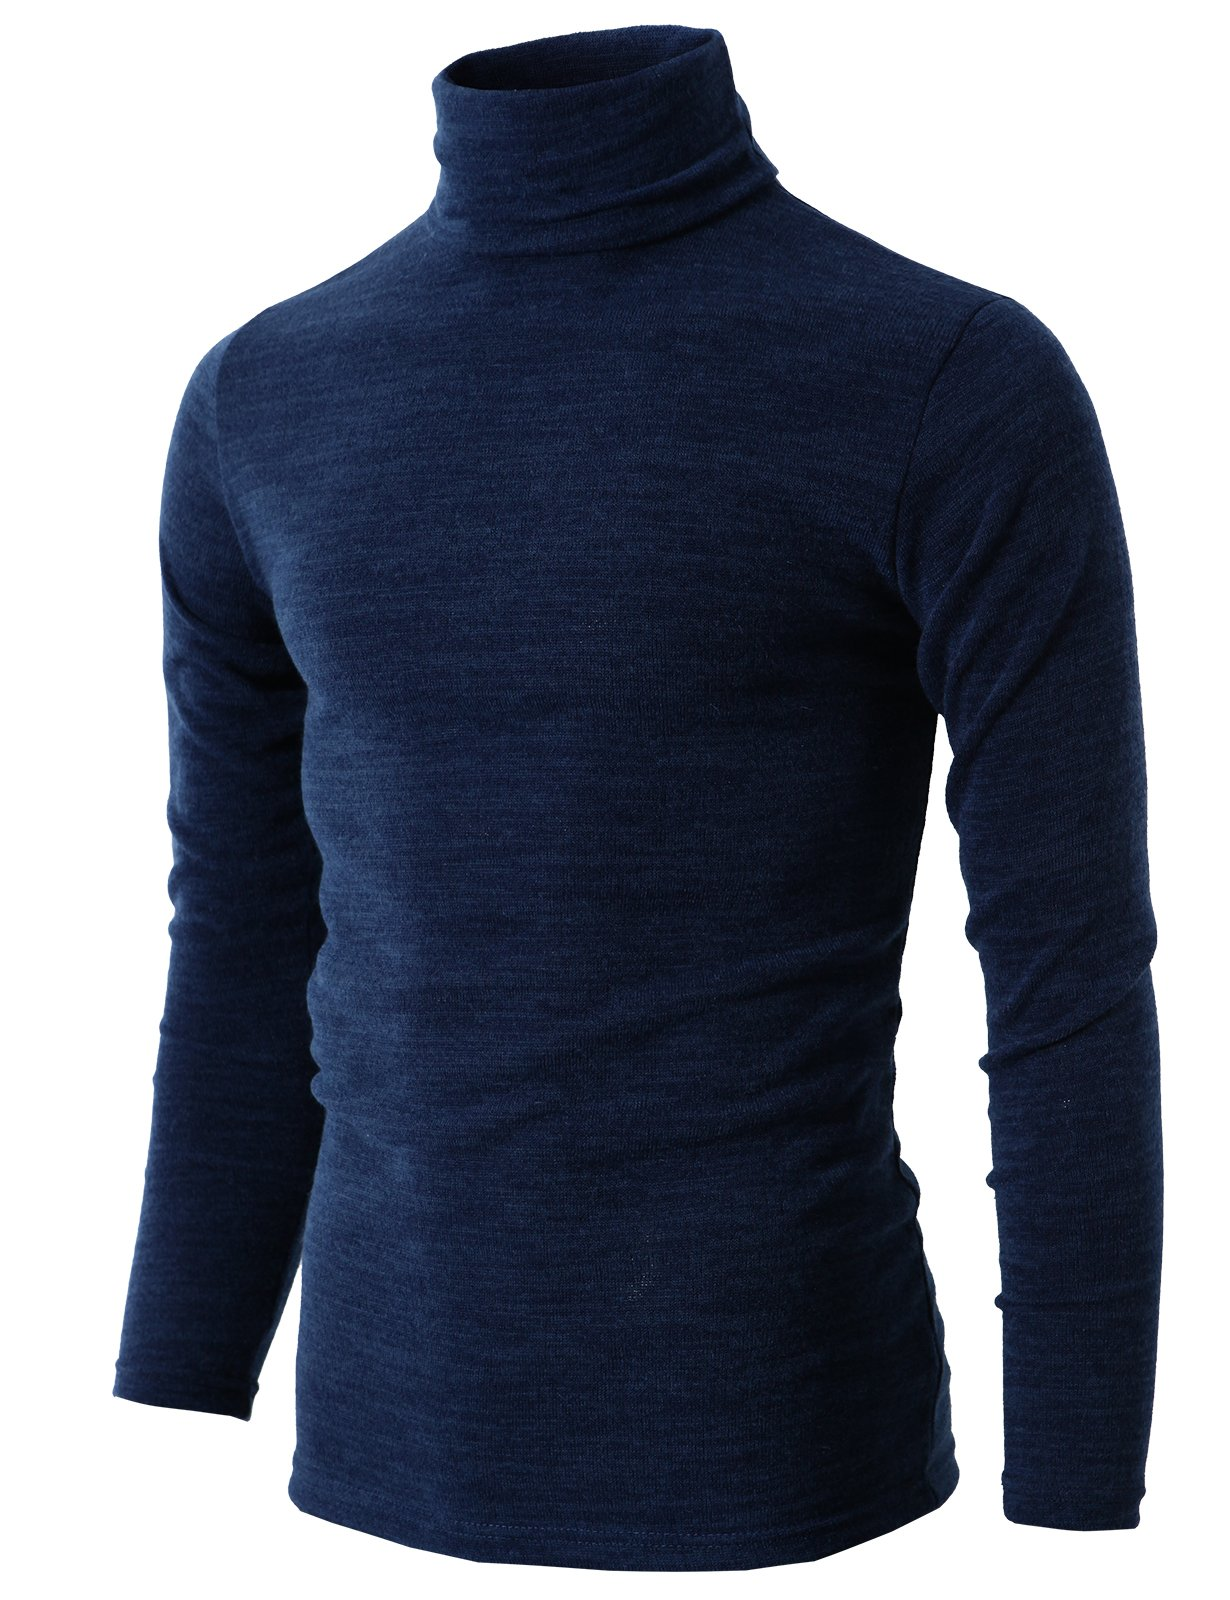 H2H Mens Lightweight Long Sleeve Rib Turtleneck Top Pullover Sweater NAVY US L/Asia 3XL (KMTTL028) by H2H